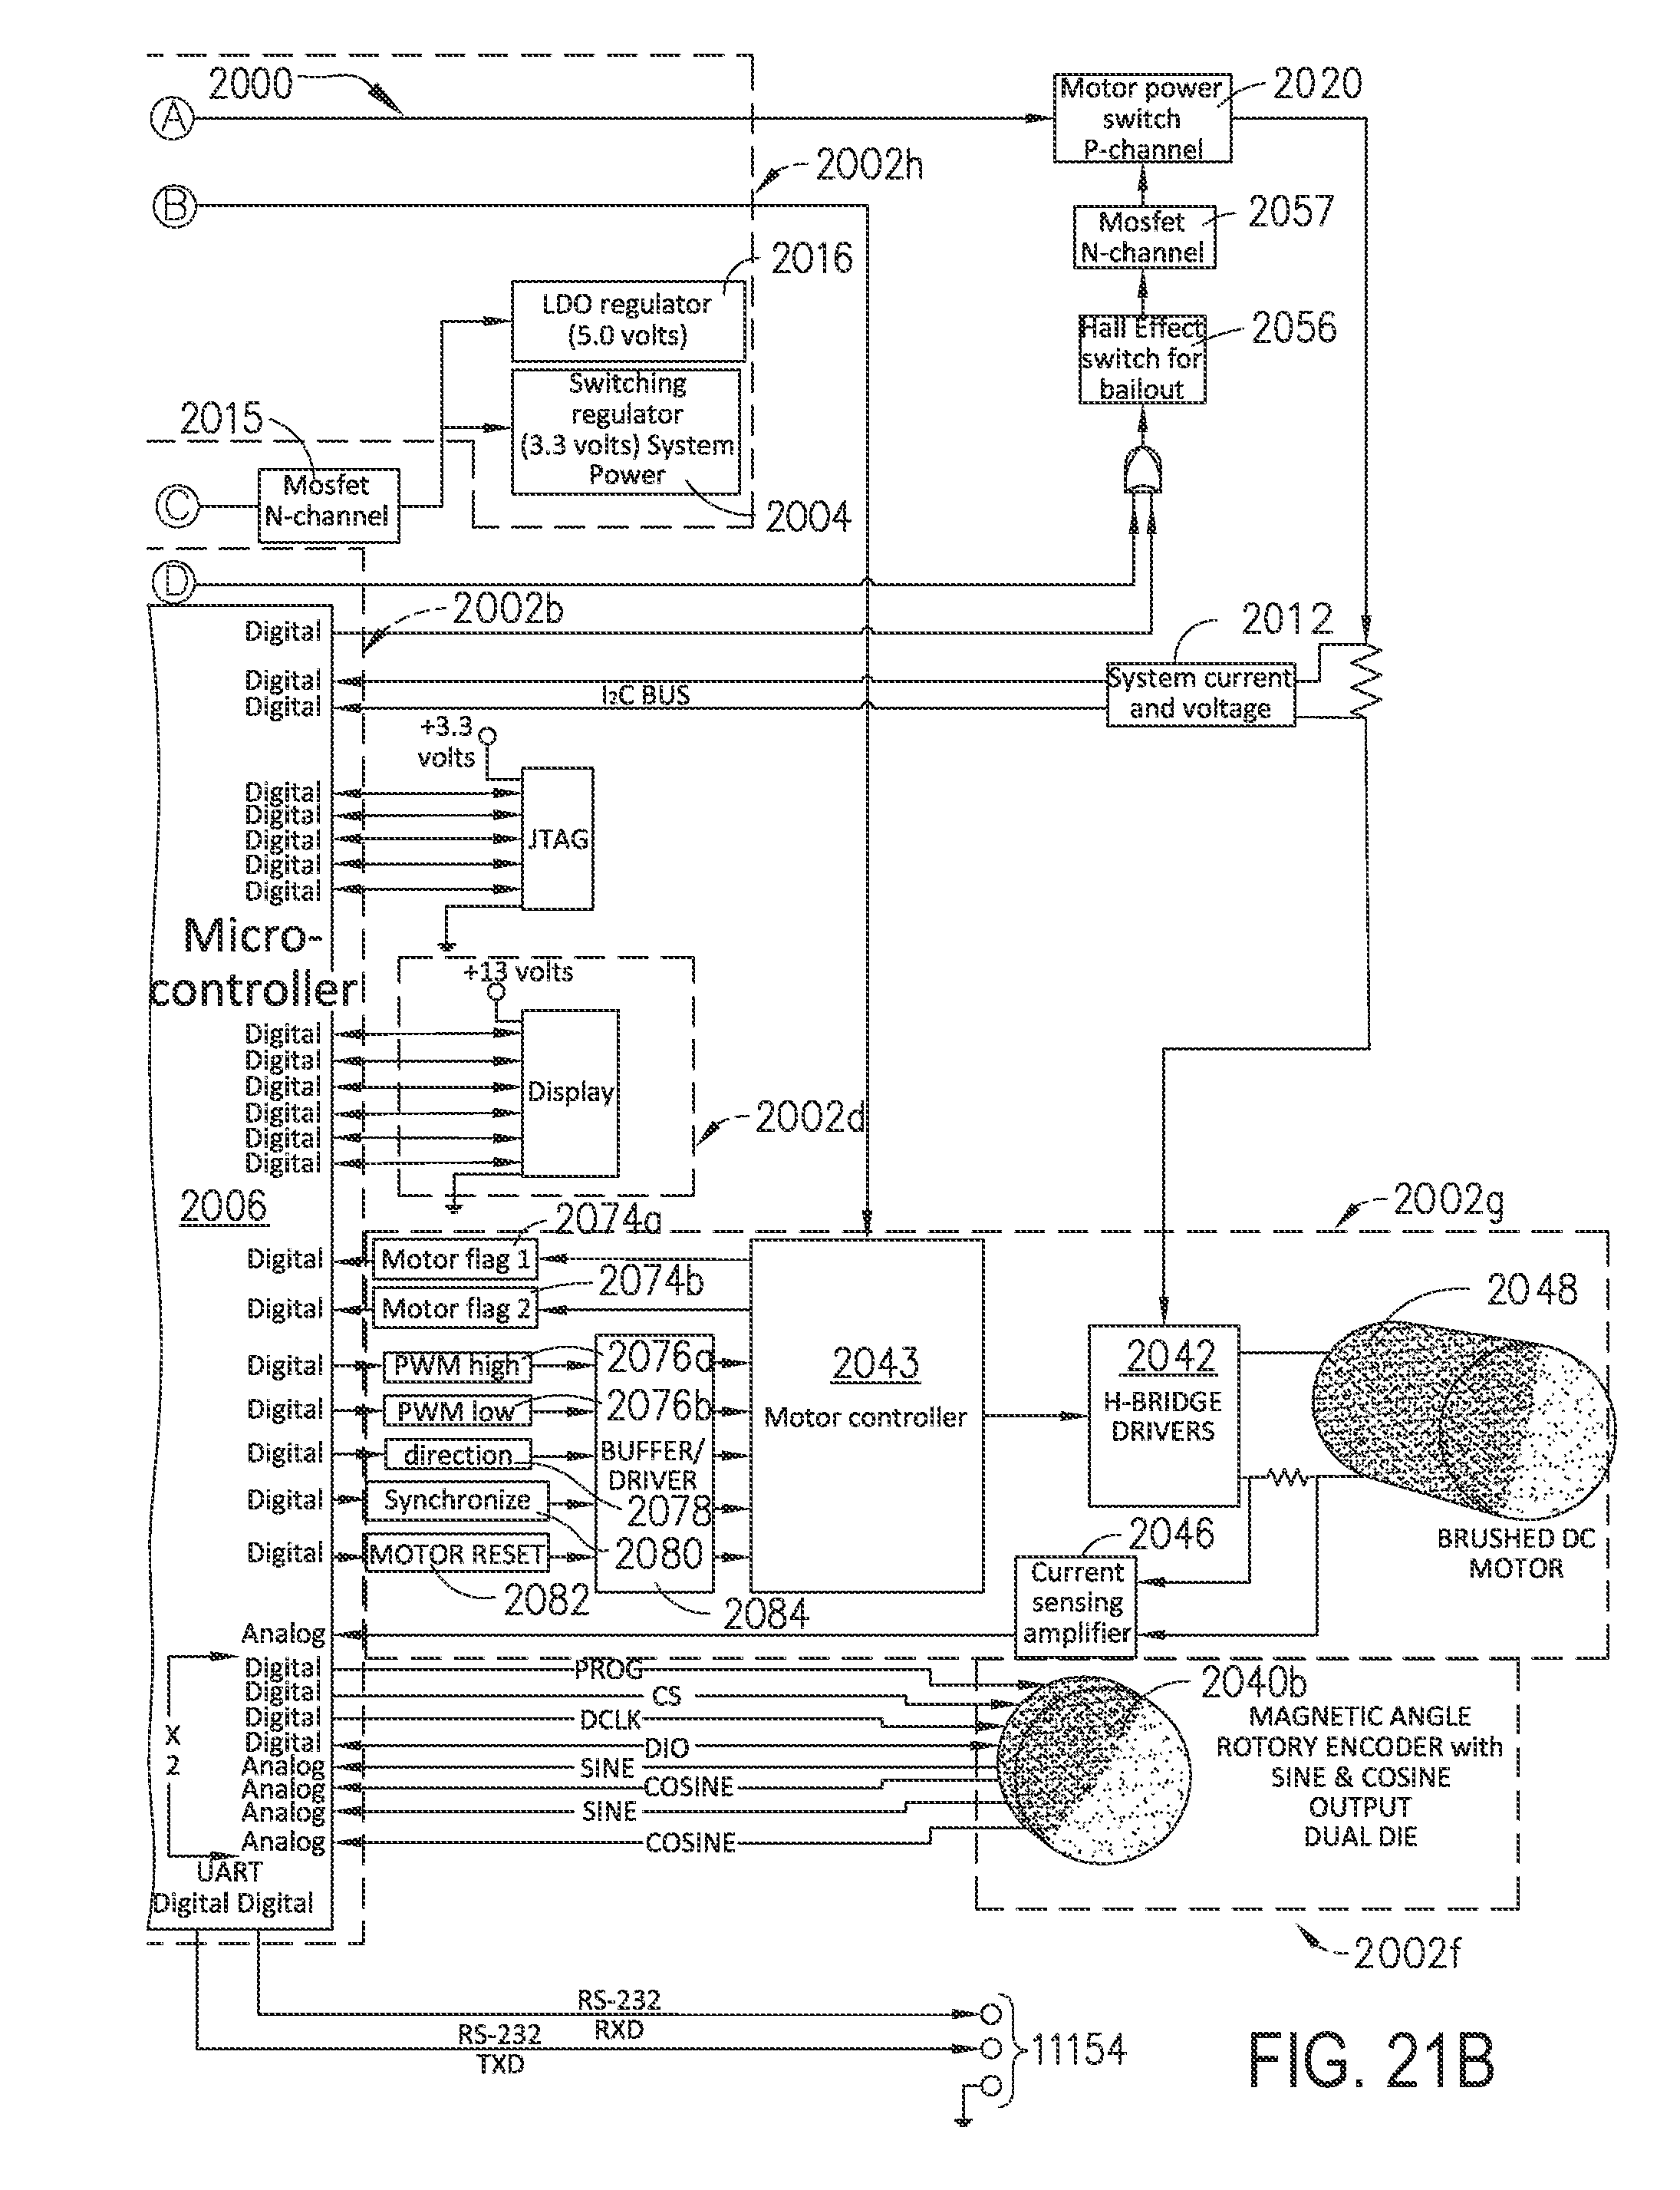 Roger Andrews Switching System